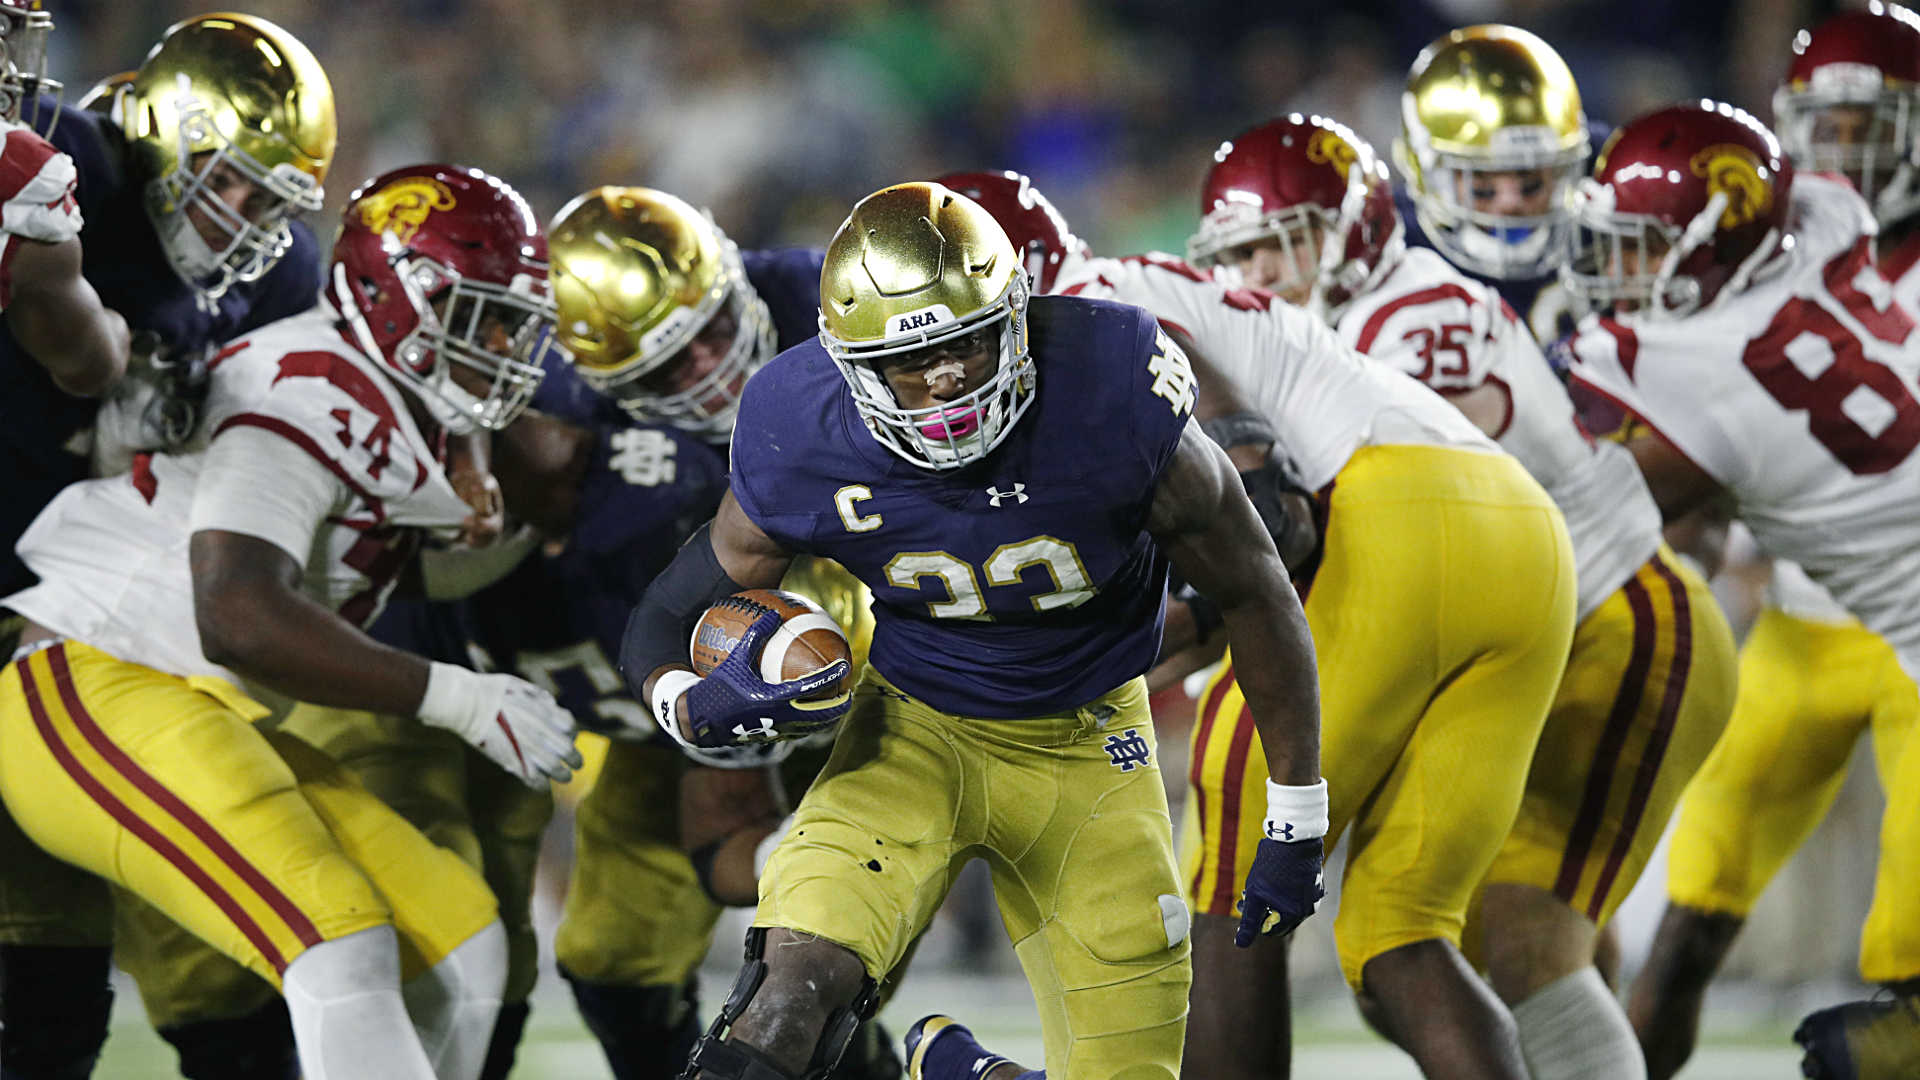 Notre Dame s Josh Adams should have a spot on your Heisman ballot